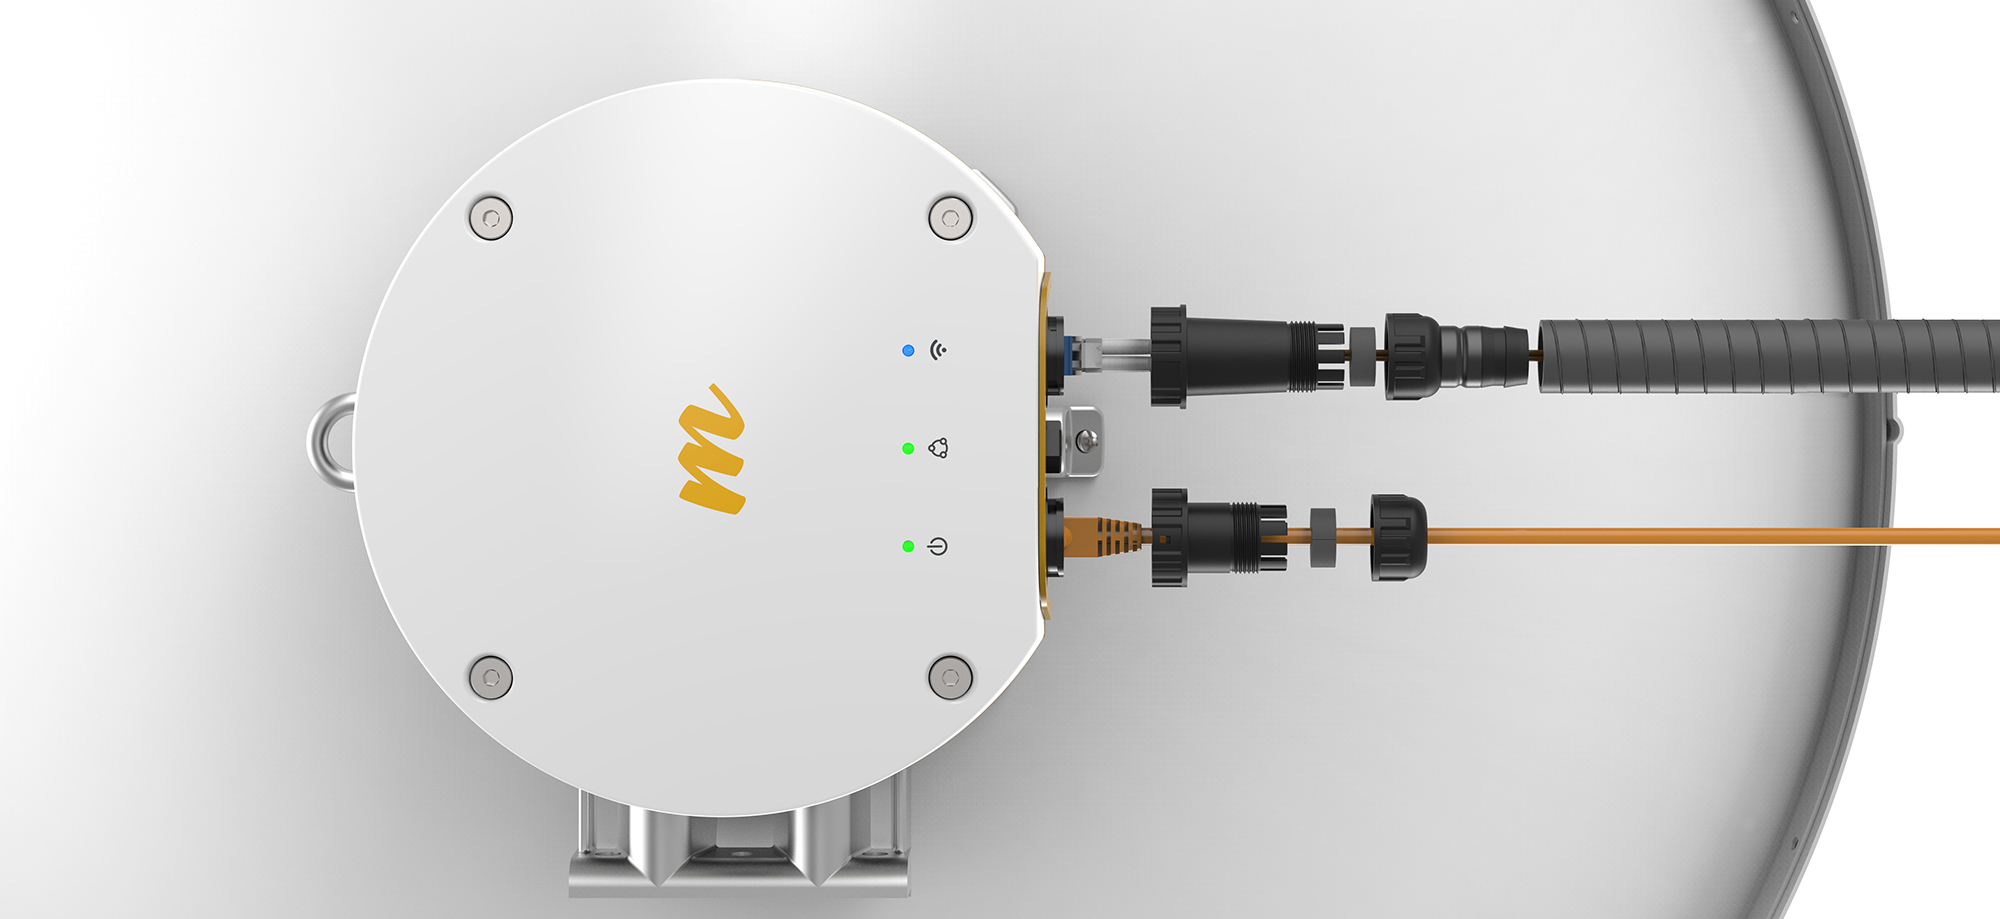 Mimosa Gigabit Backhaul